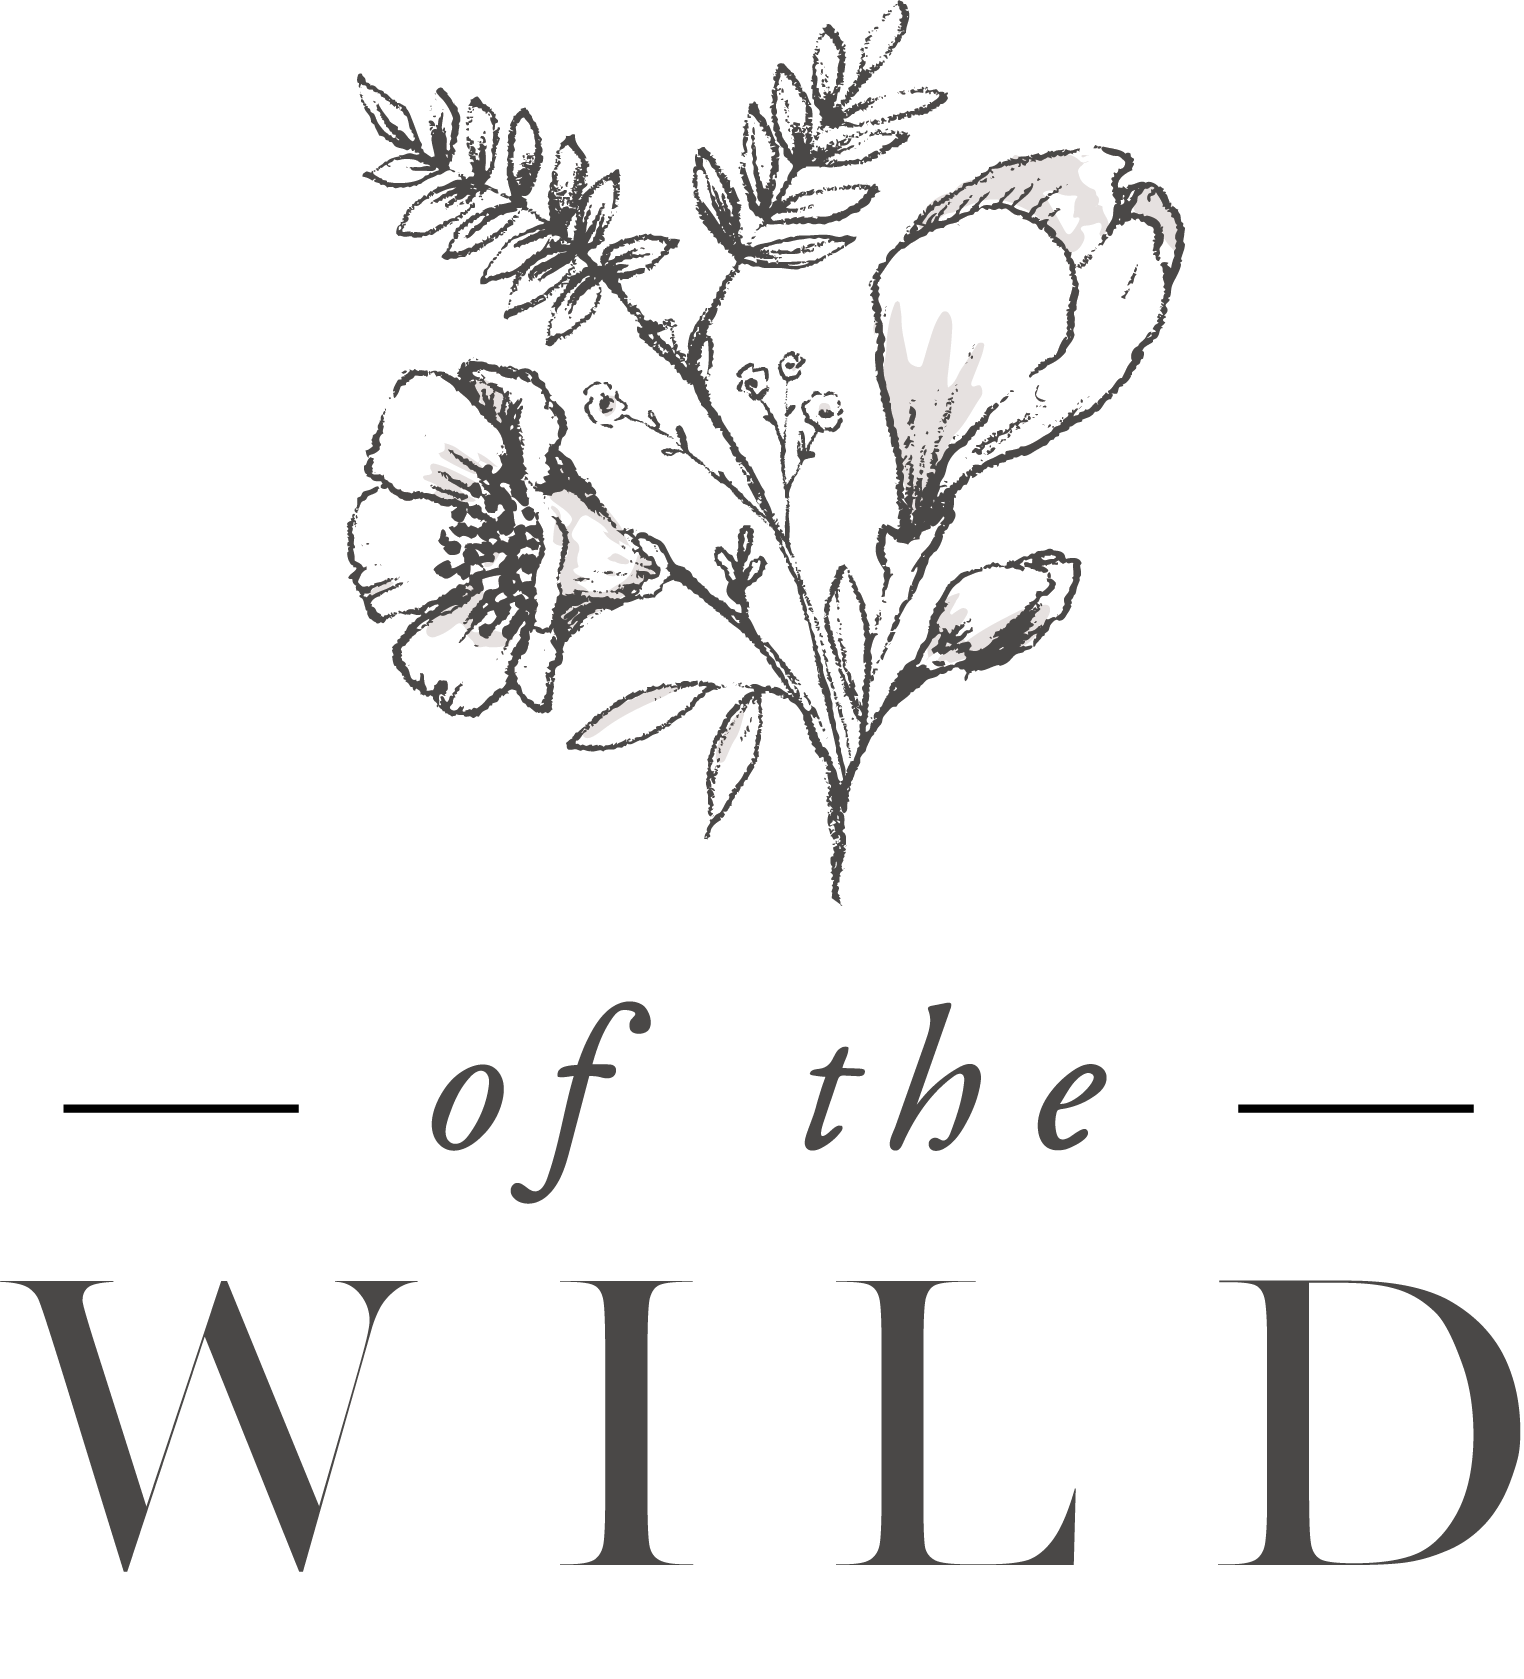 This is the of the wild logo